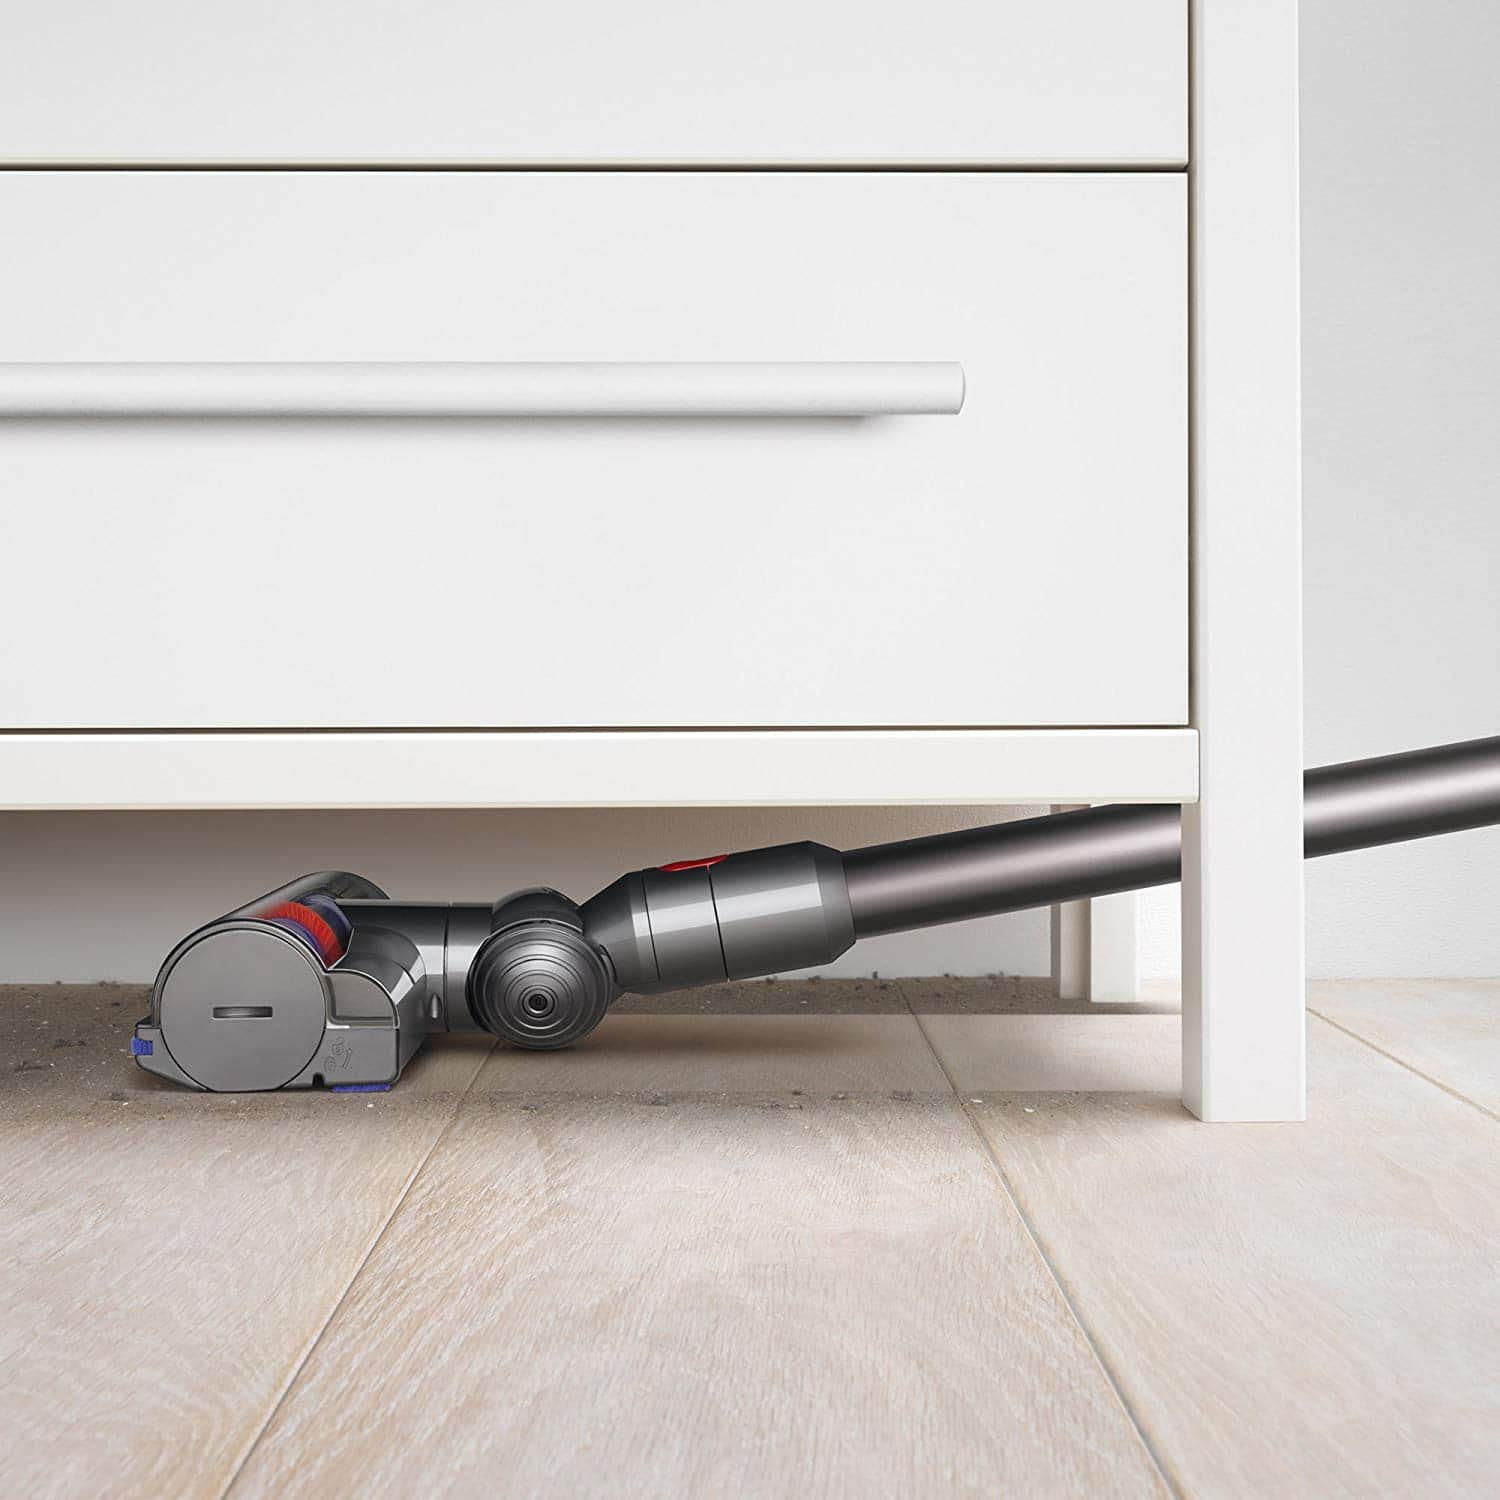 using Dyson V7 to clean under cabinet